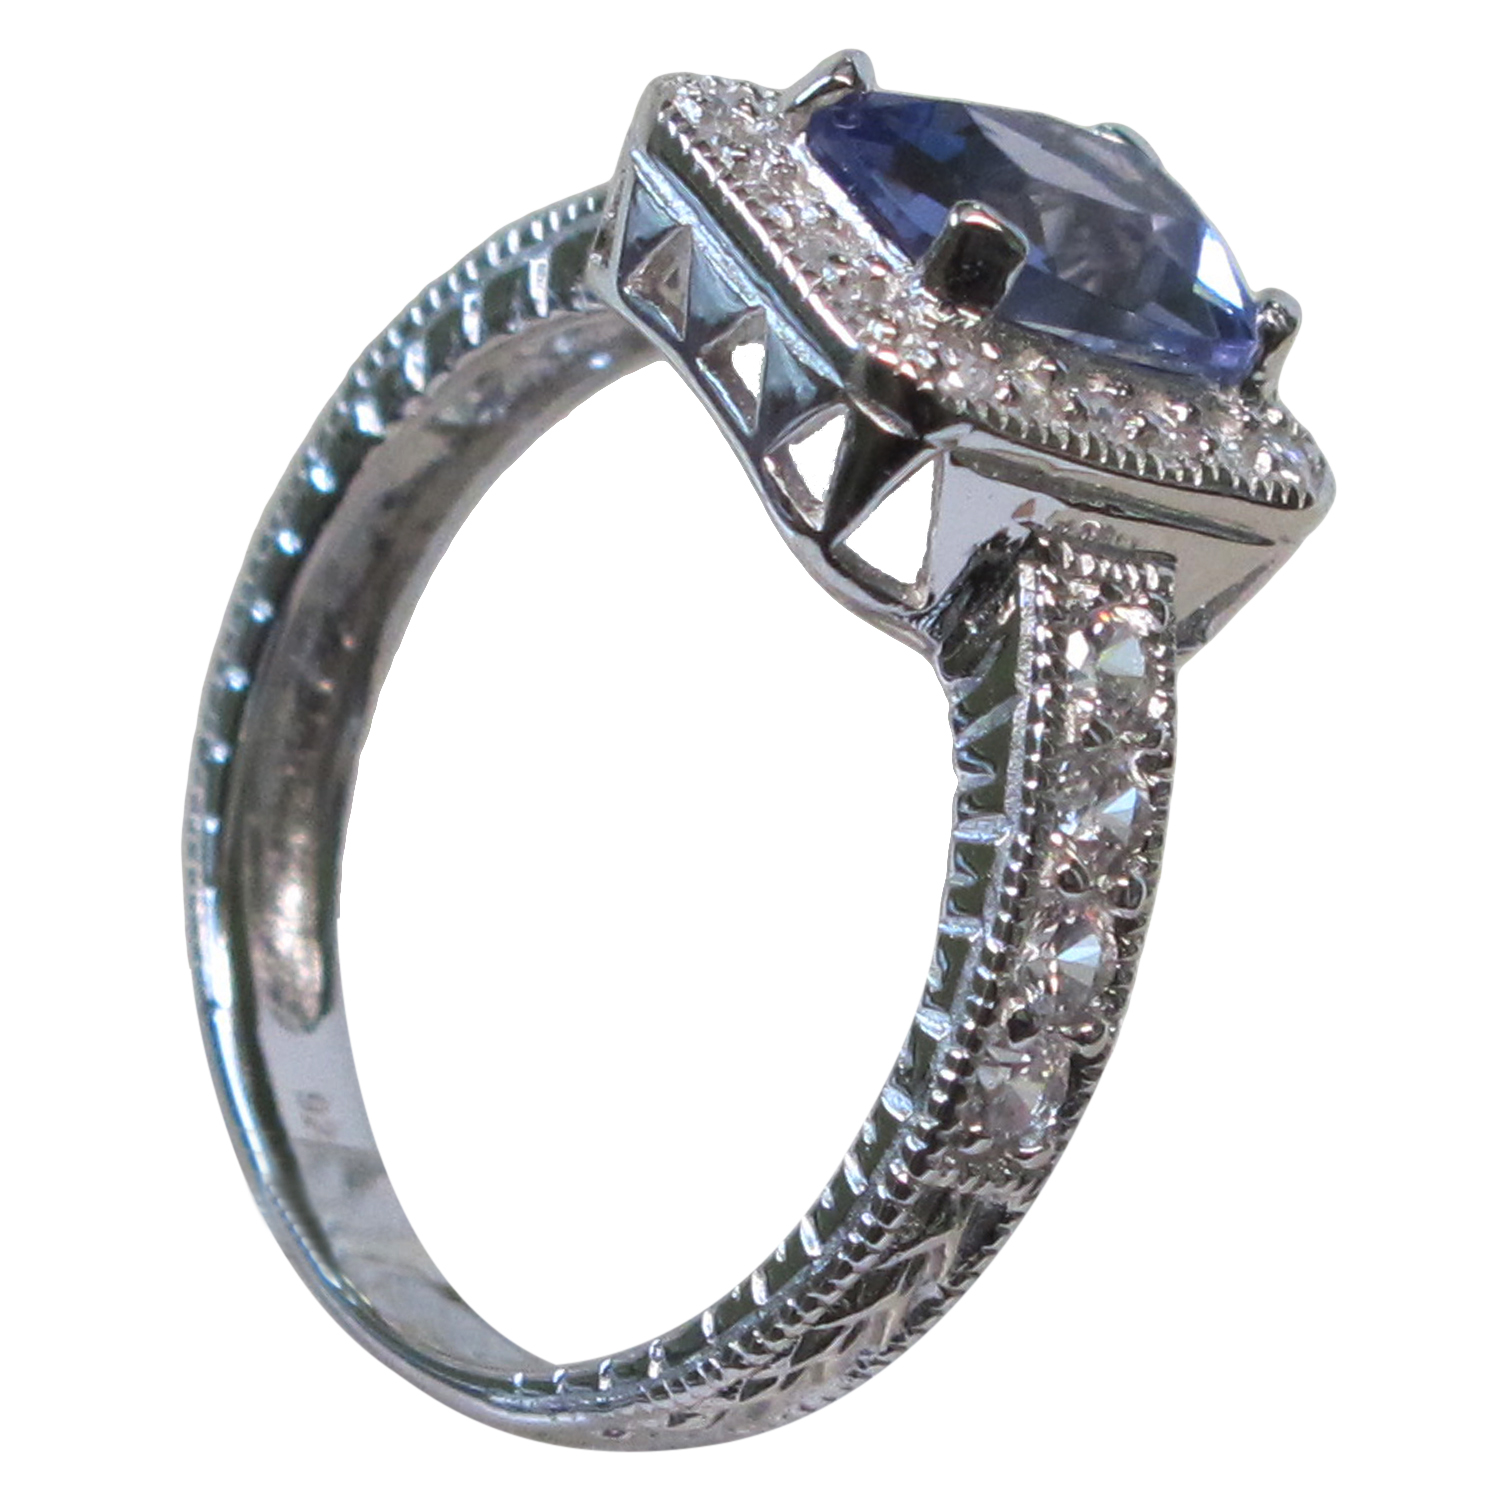 TRENDY 1.5 CT AQUAMARINE 925 STERLING SILVER RING SIZE 5-10